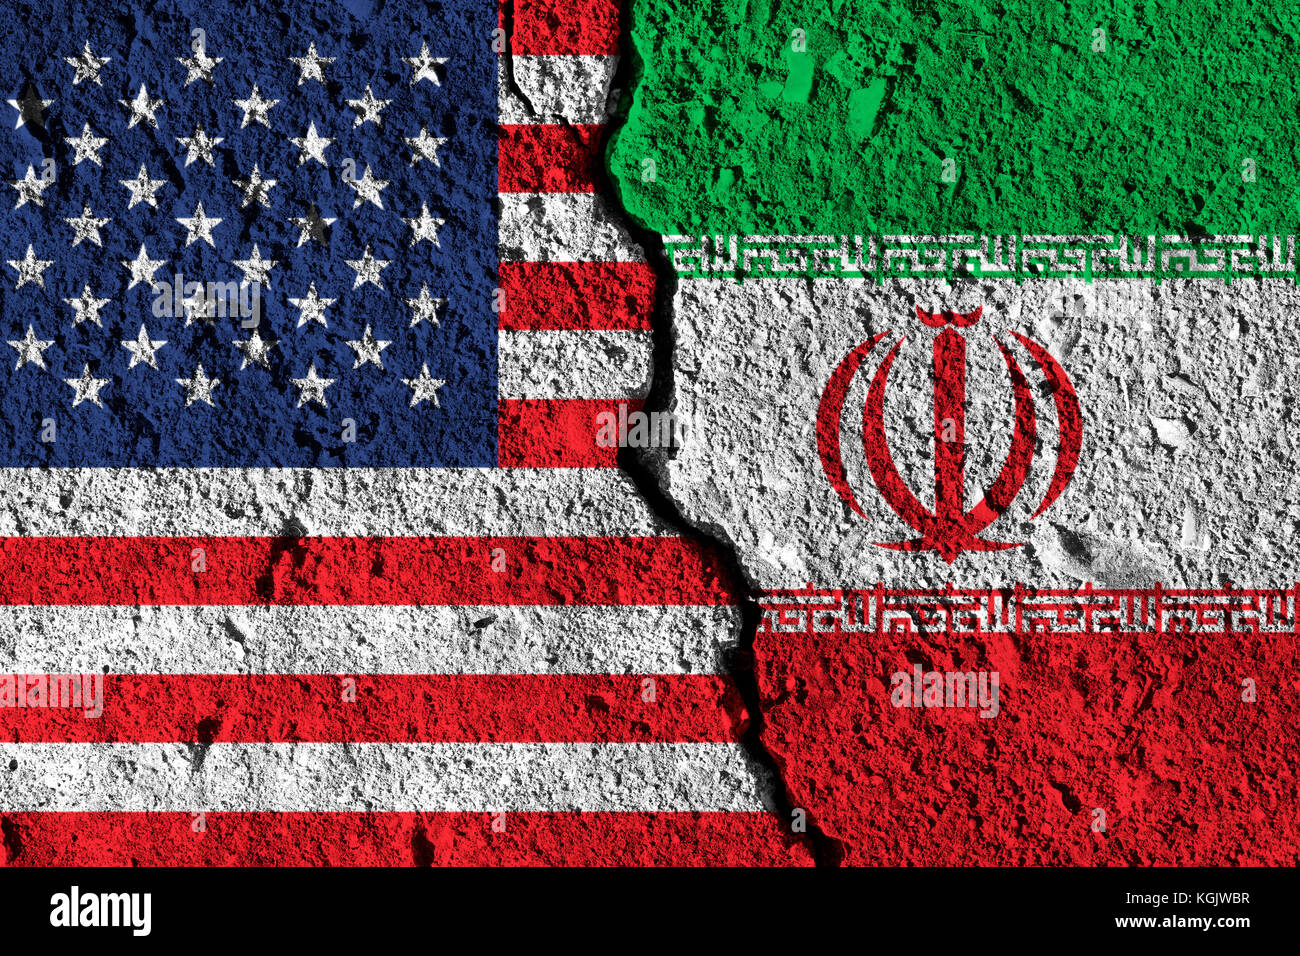 relationship between america and iran